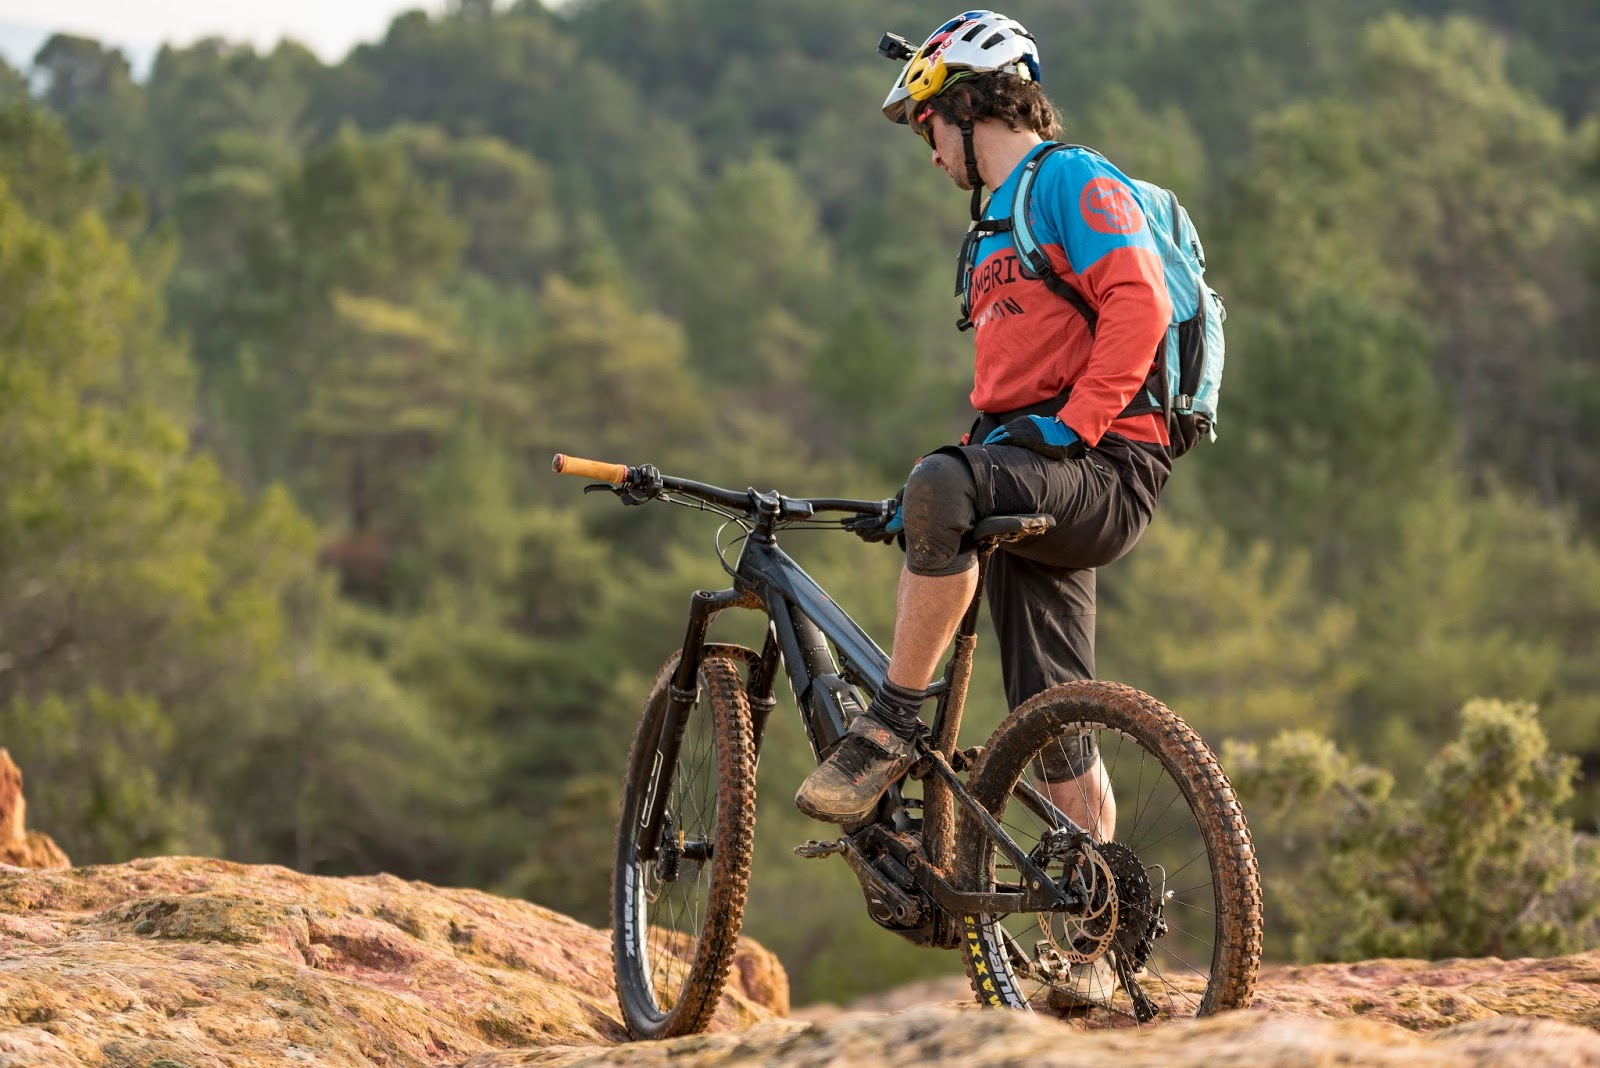 A New Chapter: Introducing the New Canyon Spectral:ON eMTB